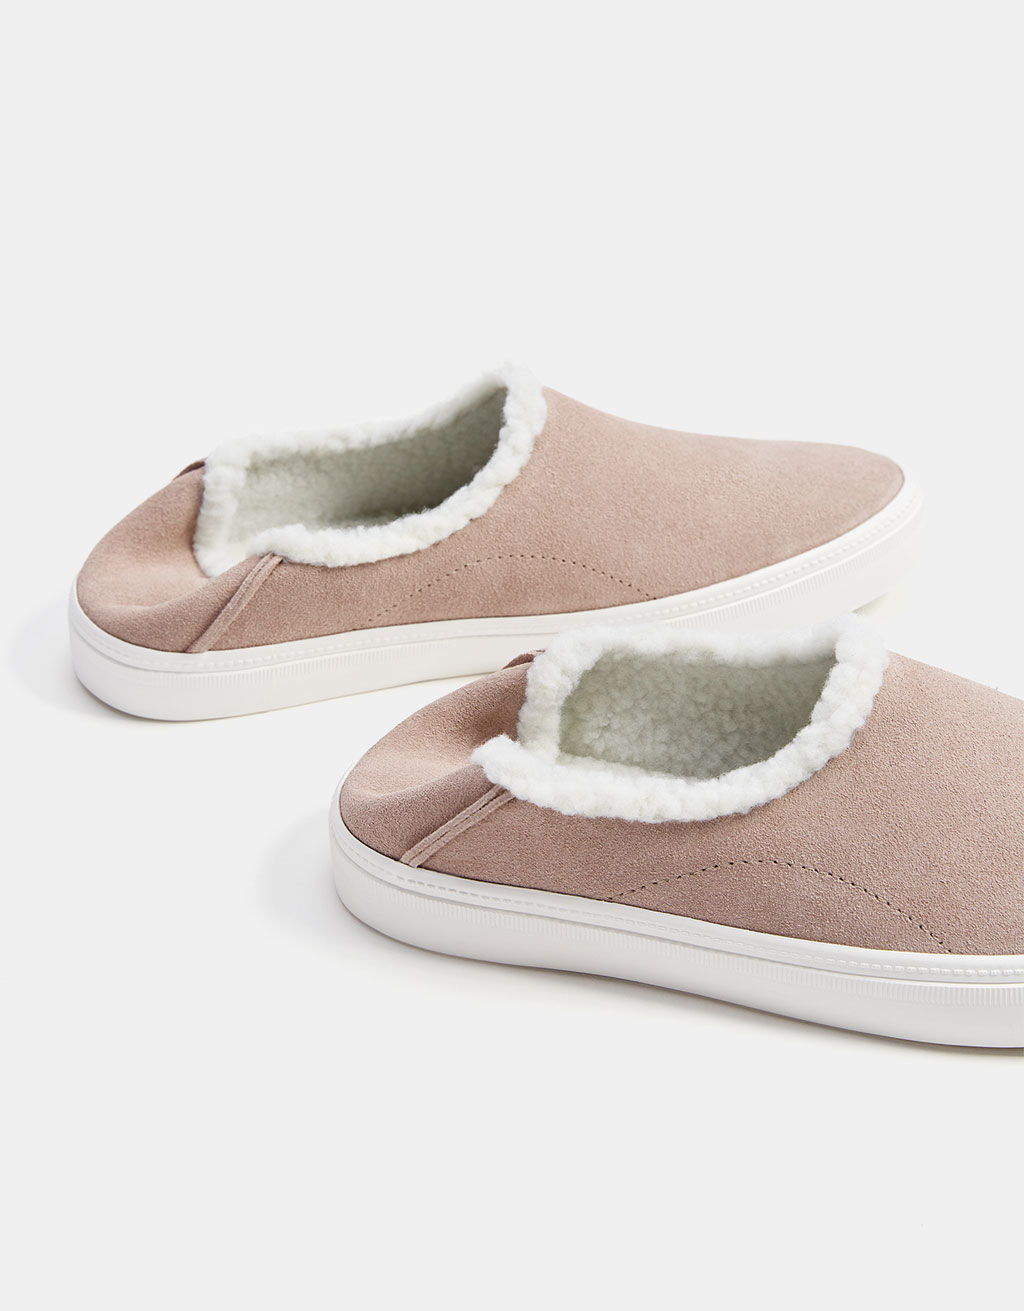 Fleecy leather slippers